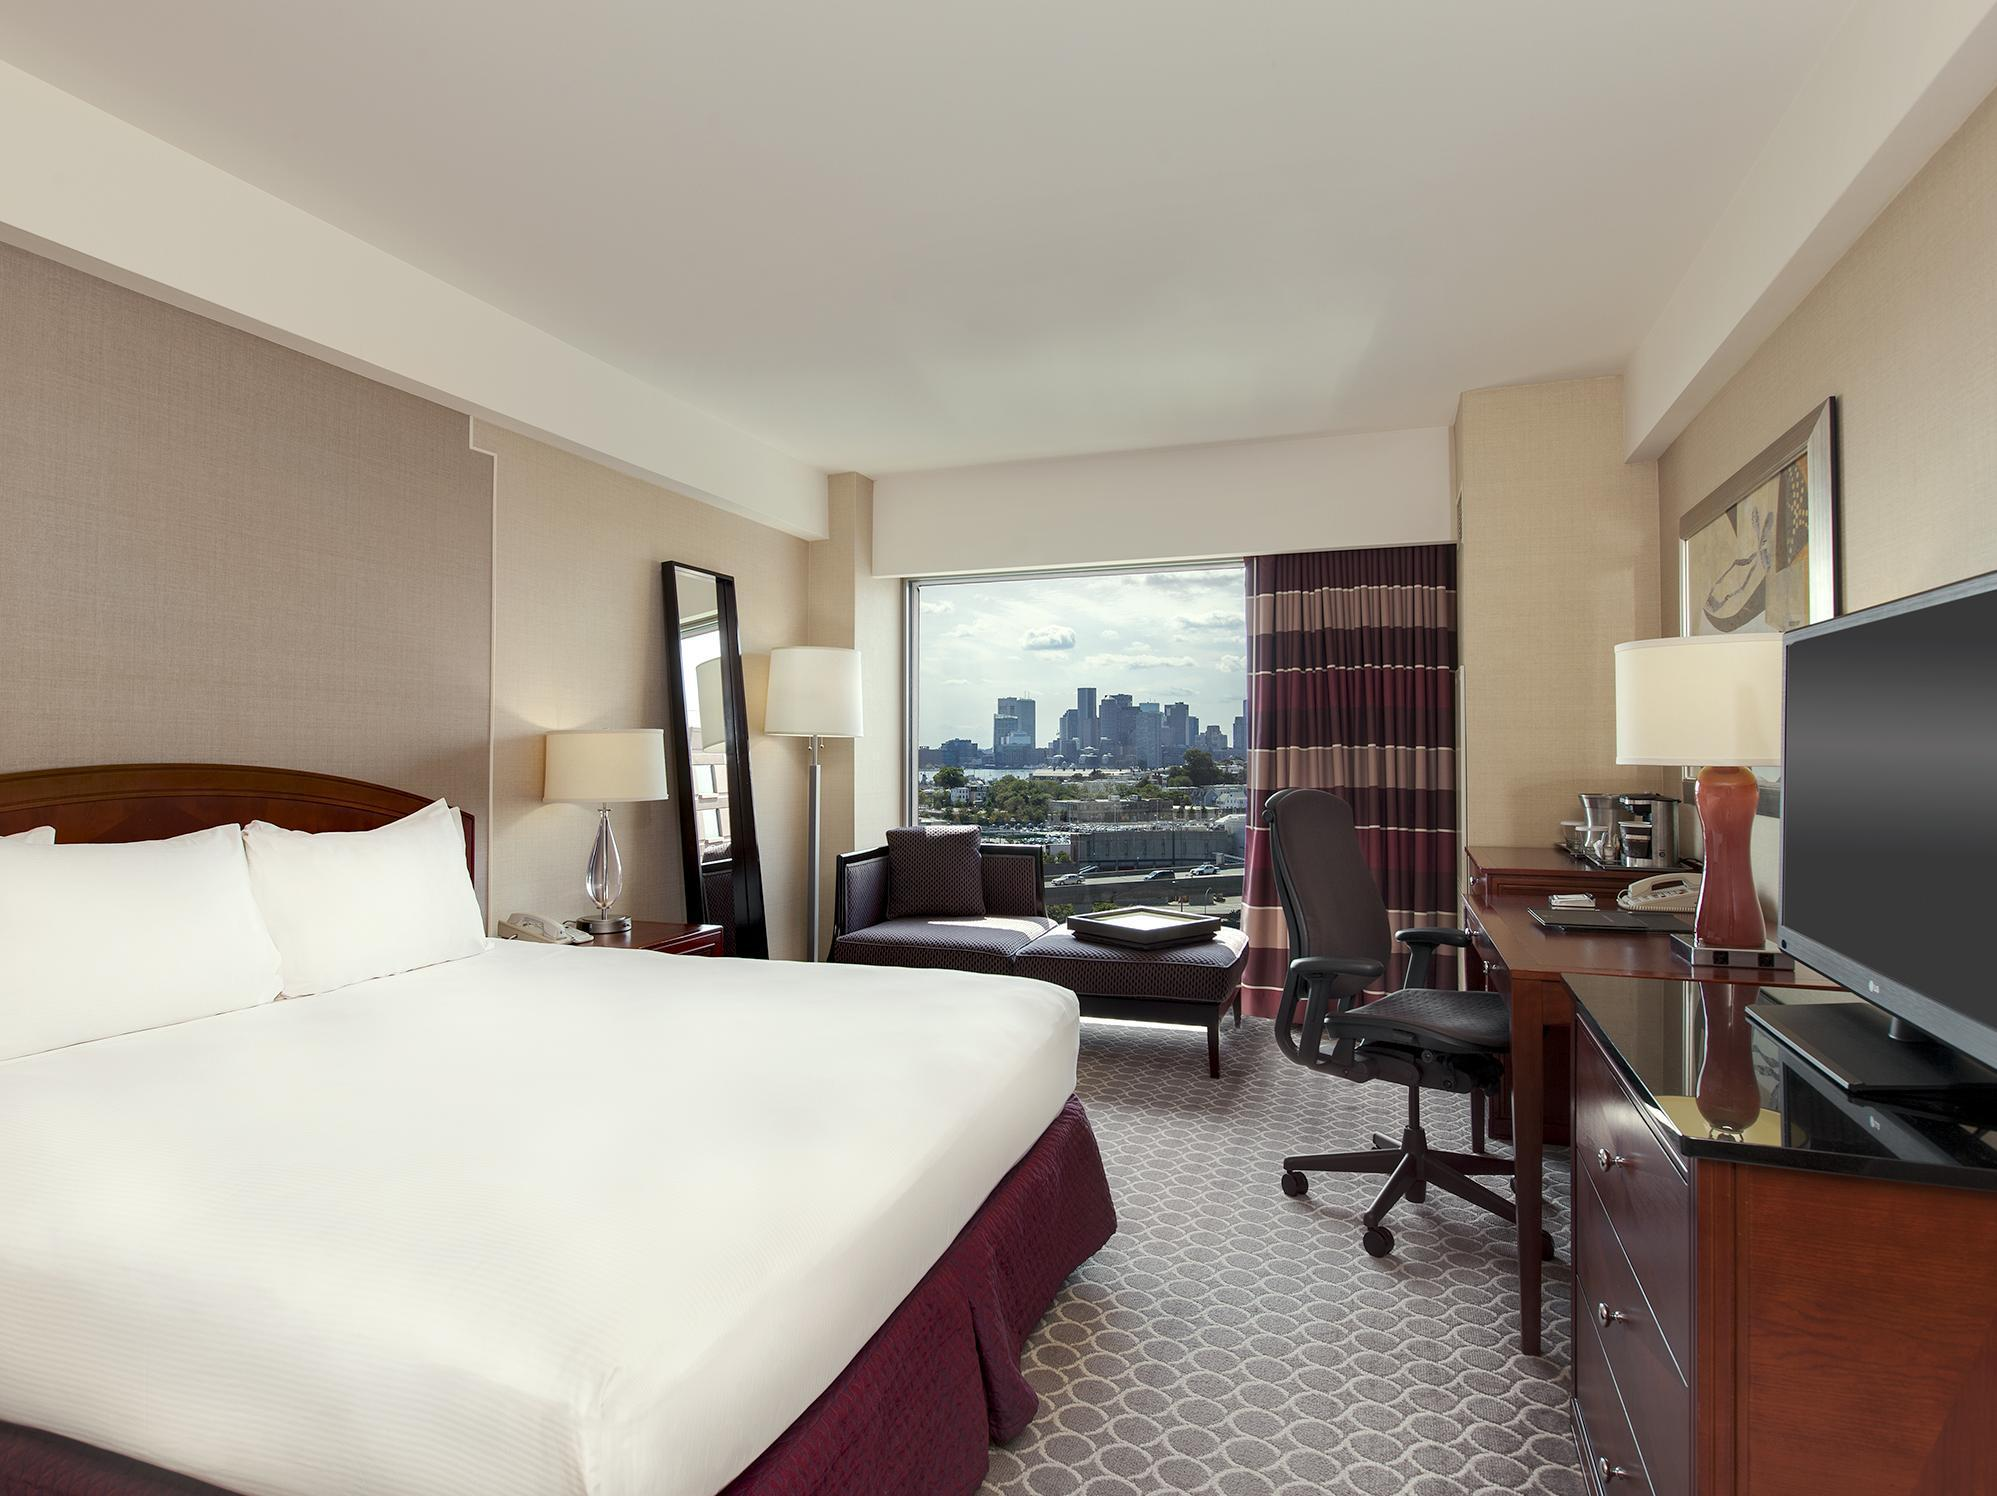 Zimmer mit Bostonblick u. Kingsize Bett (1 King Bed Boston View)